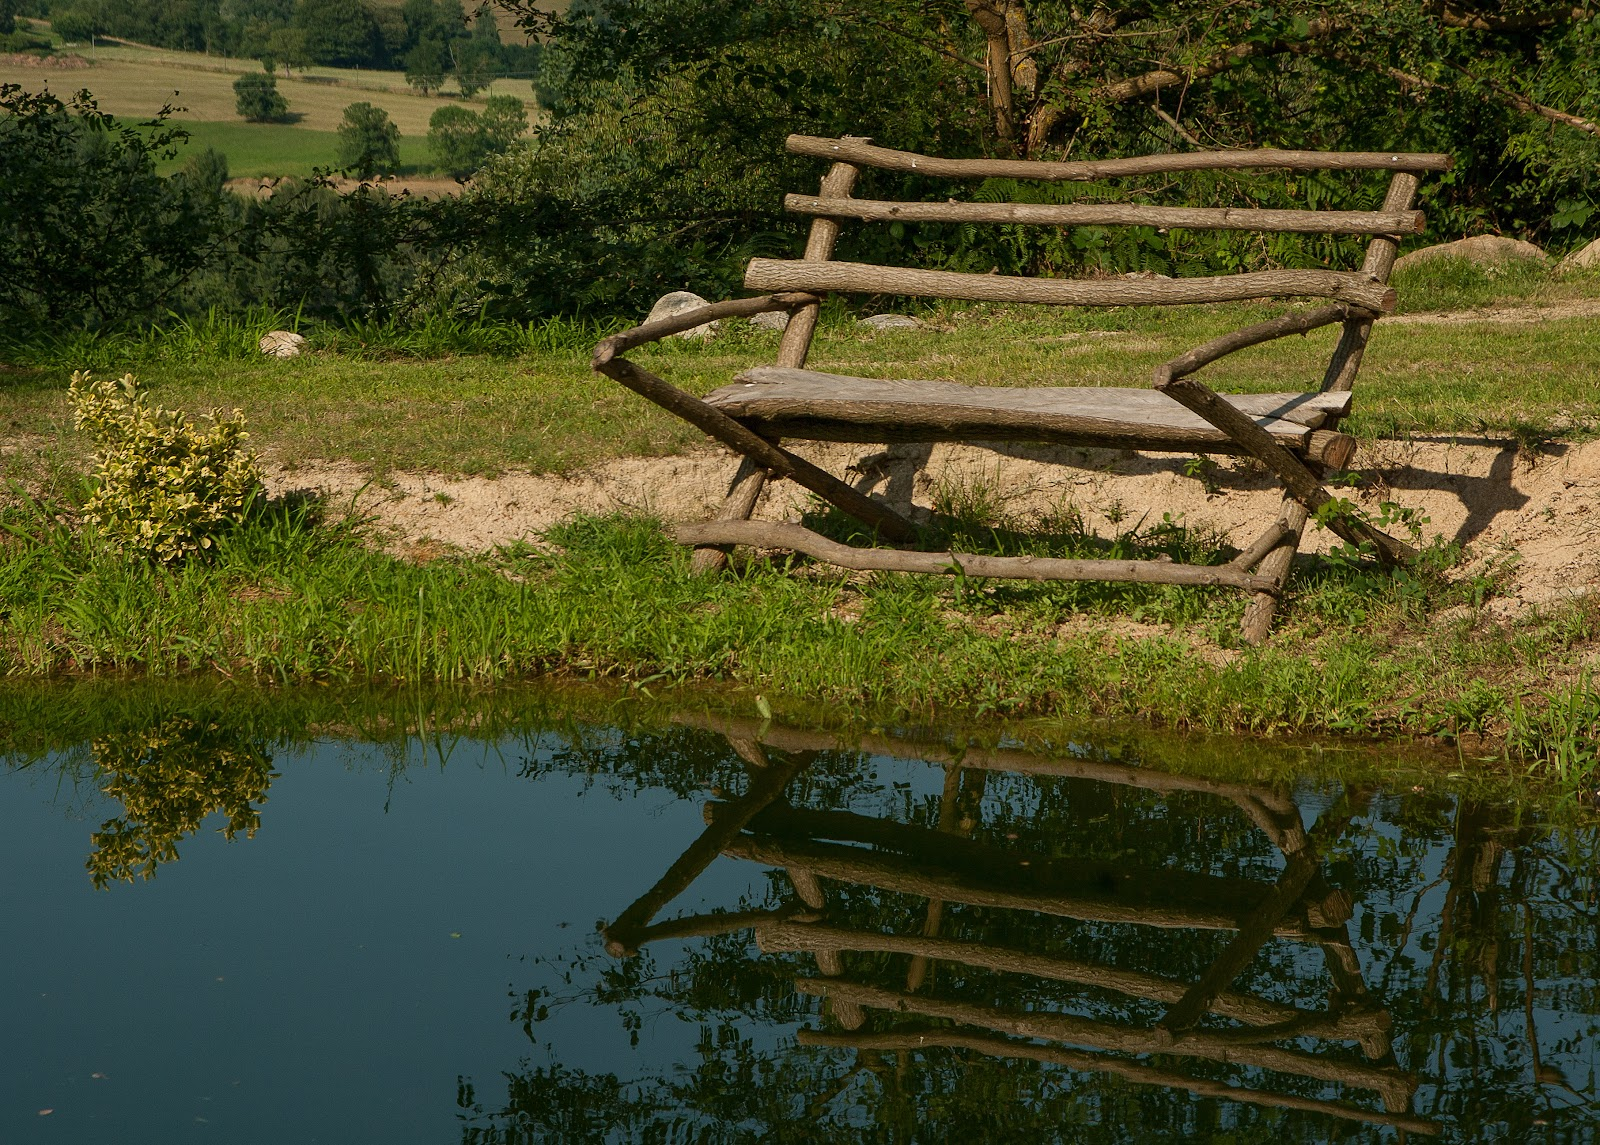 lake-bench-reflections-nature-158296.jpeg